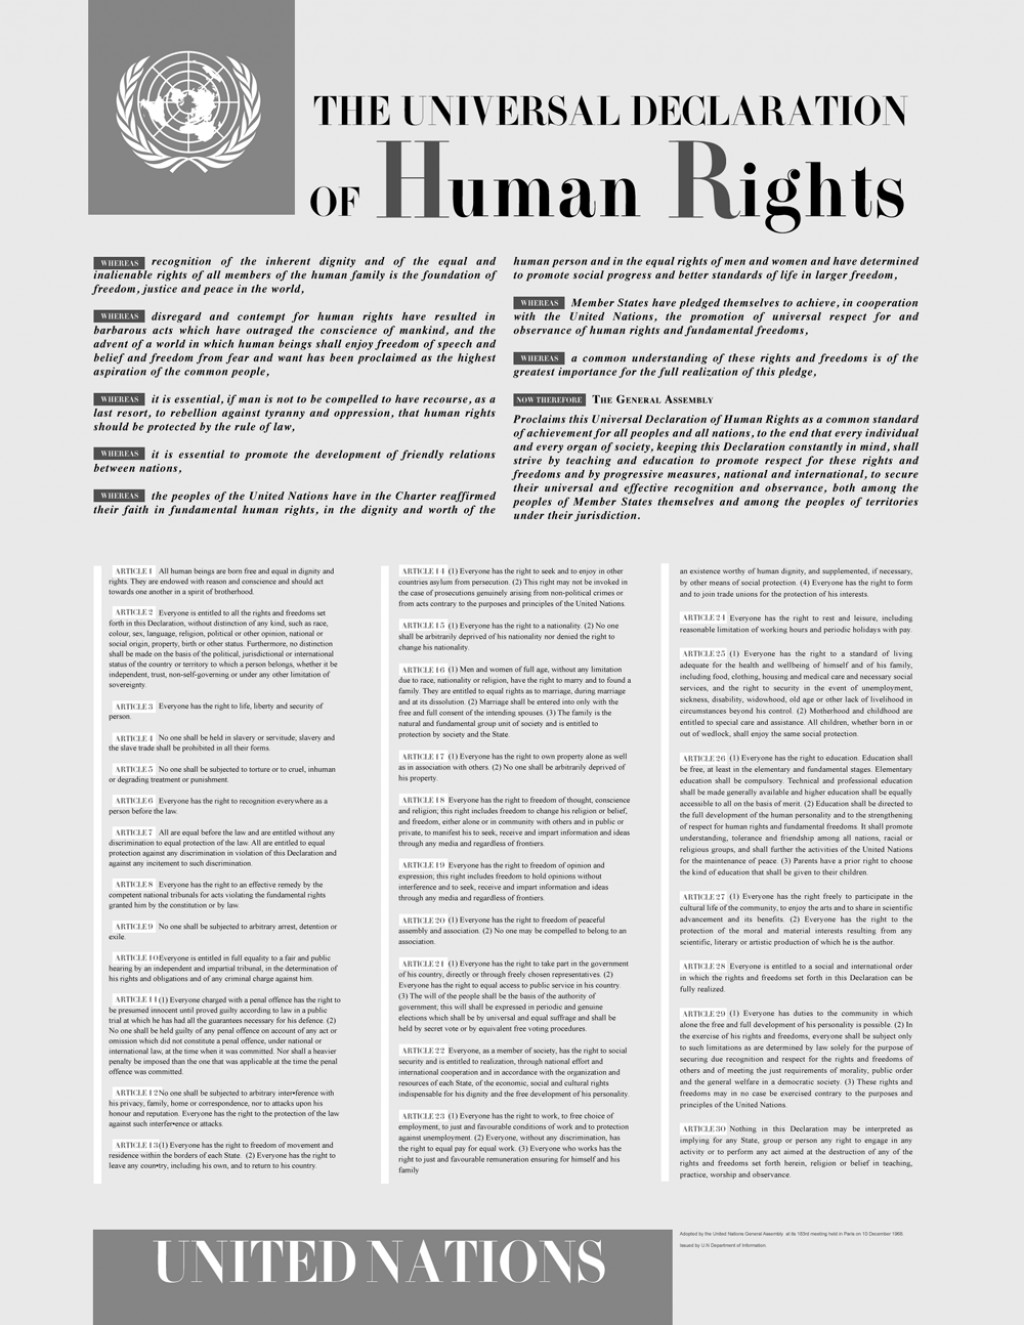 004 Thematic Essay On Human Rights Universaldeclarationofhumanrights Stunning Justice Large